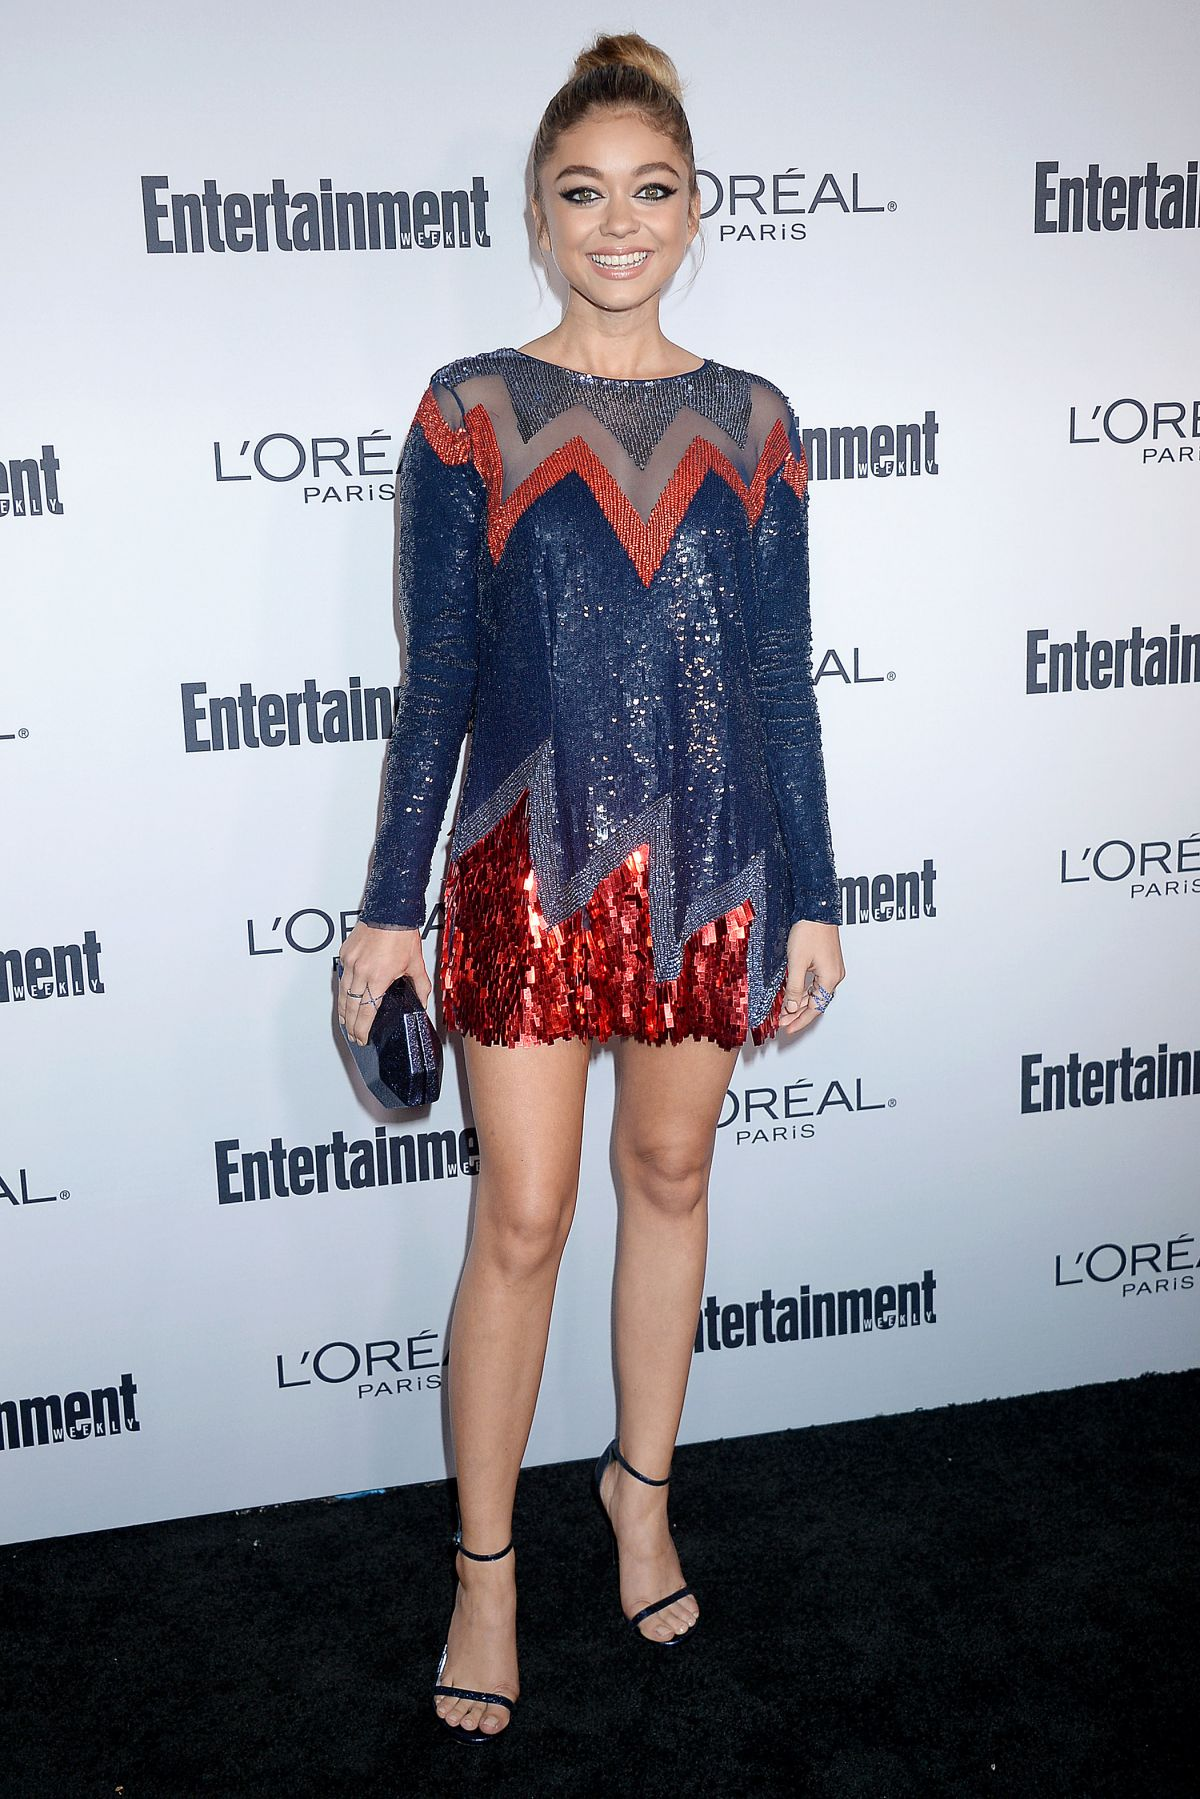 SARAH HYLAND at Entertainment Weekly 2016 Pre-emmy Party in Los Angeles 09/16/2016